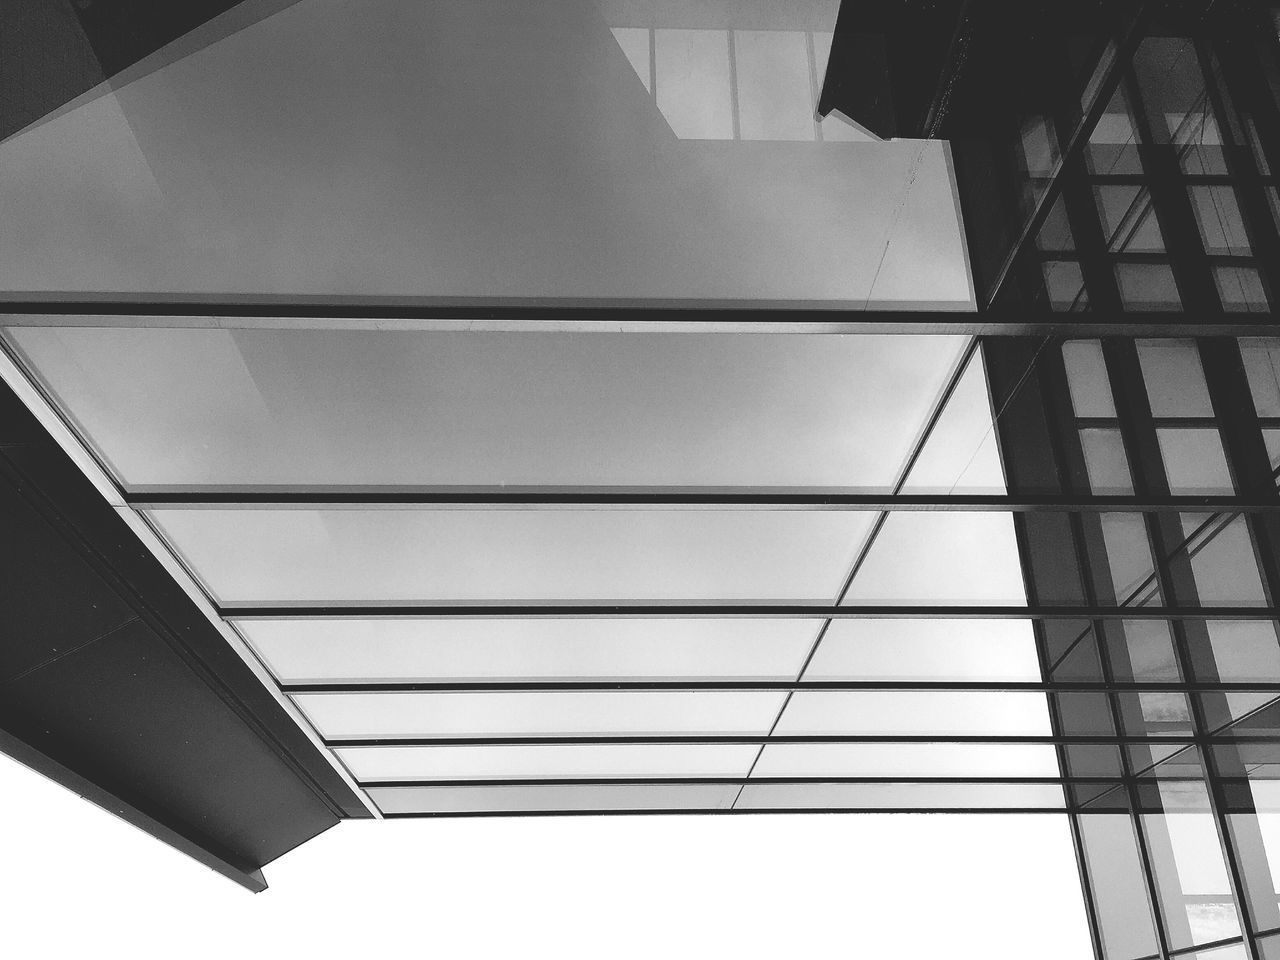 Modern Architecture The Architect - 2017 EyeEm Awards Low Angle View Architecture Built Structure No People Indoors  Day Modern Building Exterior Architecture Modern Architecture Architecture_collection Glass Building Façade EyeEm Best Shots Architectural Detail Architecture_bw Black And White EyeEm Gallery EyeEm IPhoneography Building Architectural Feature Building Story Buildingstyles